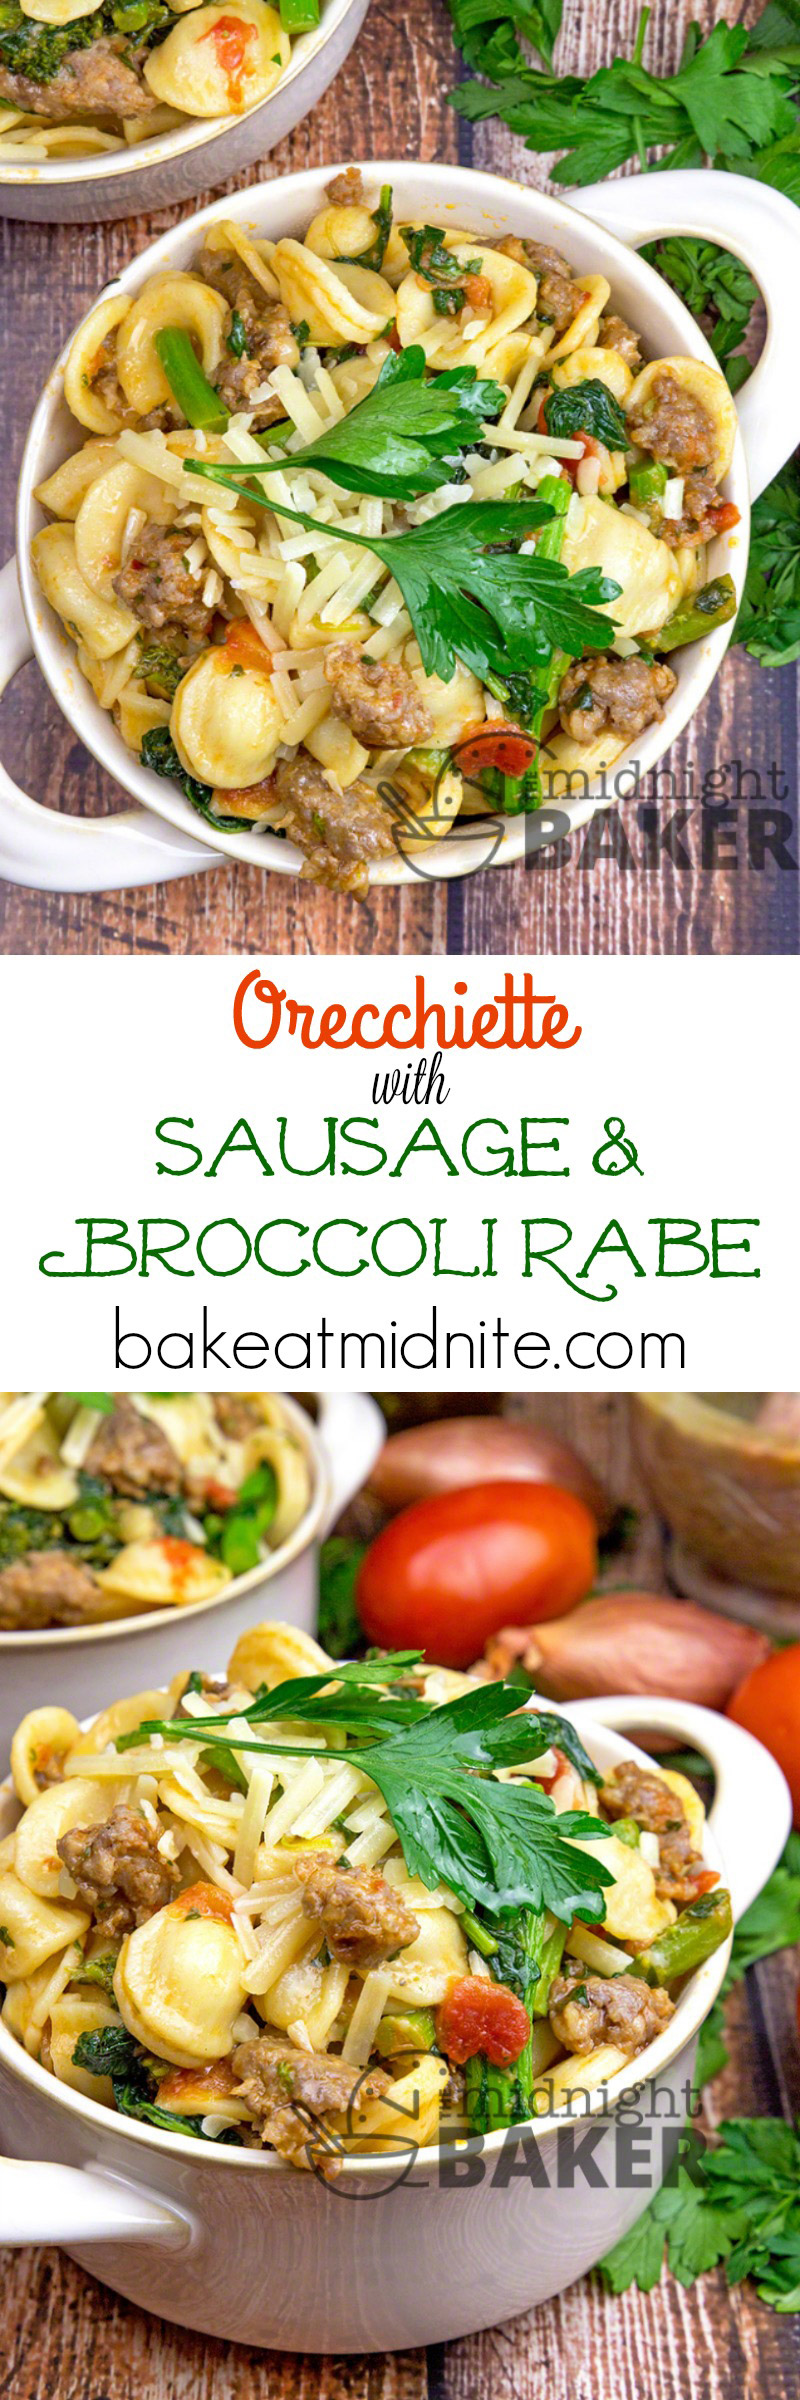 Hearty orecchiette pasta mixed with tomatoes, herbs, sausage and broccoli rabe (rapini) is a rustic and flavorful meal that's easy to prepare!